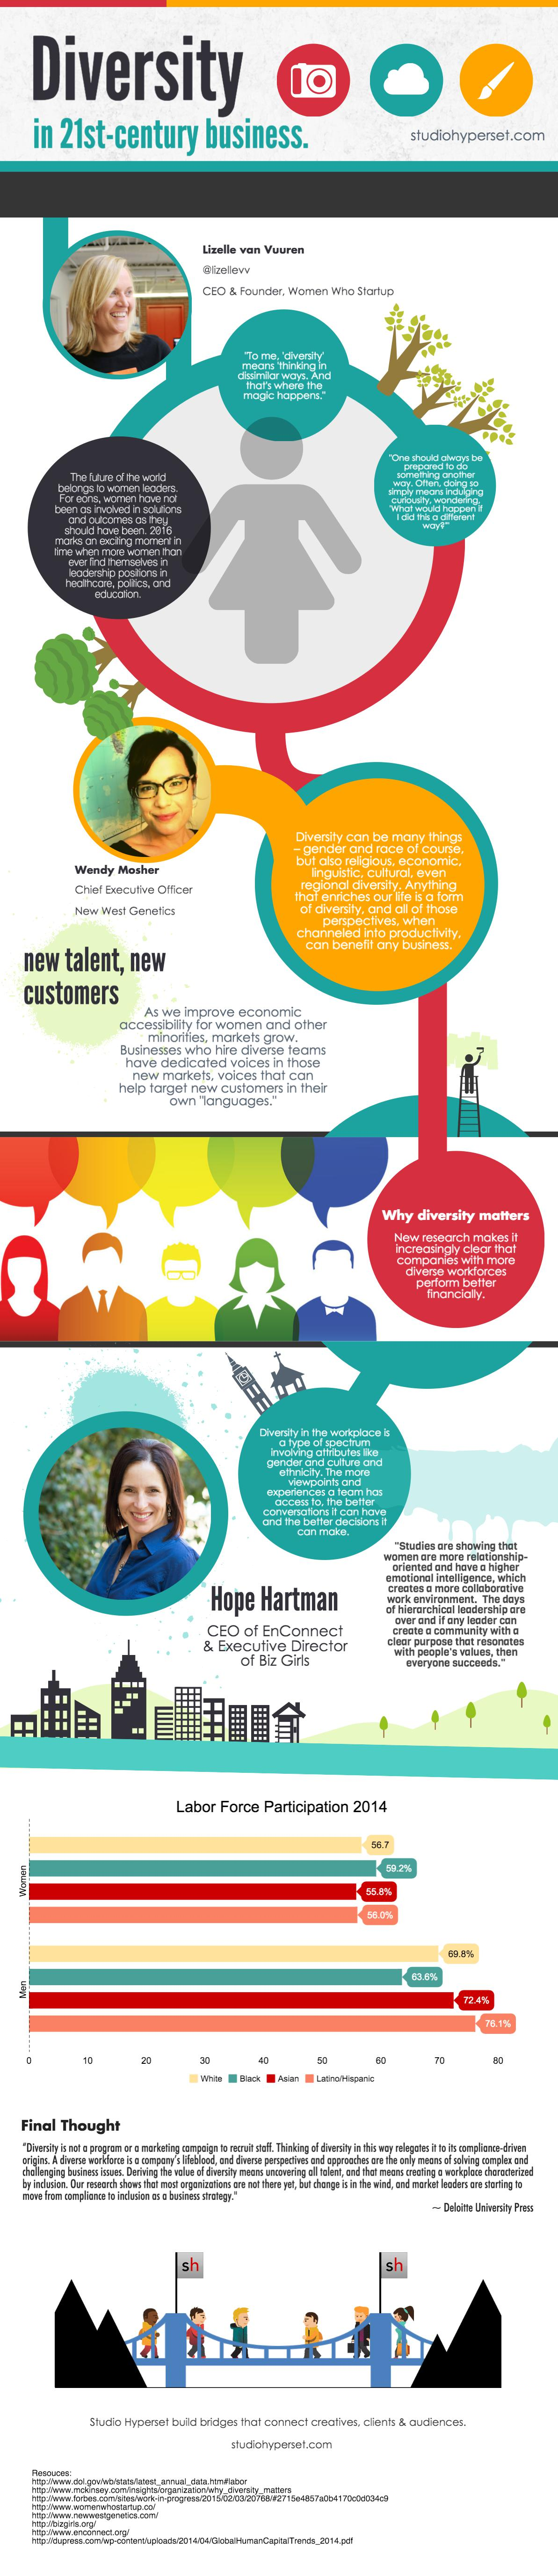 Diversity in 21st-century Business (Infographic